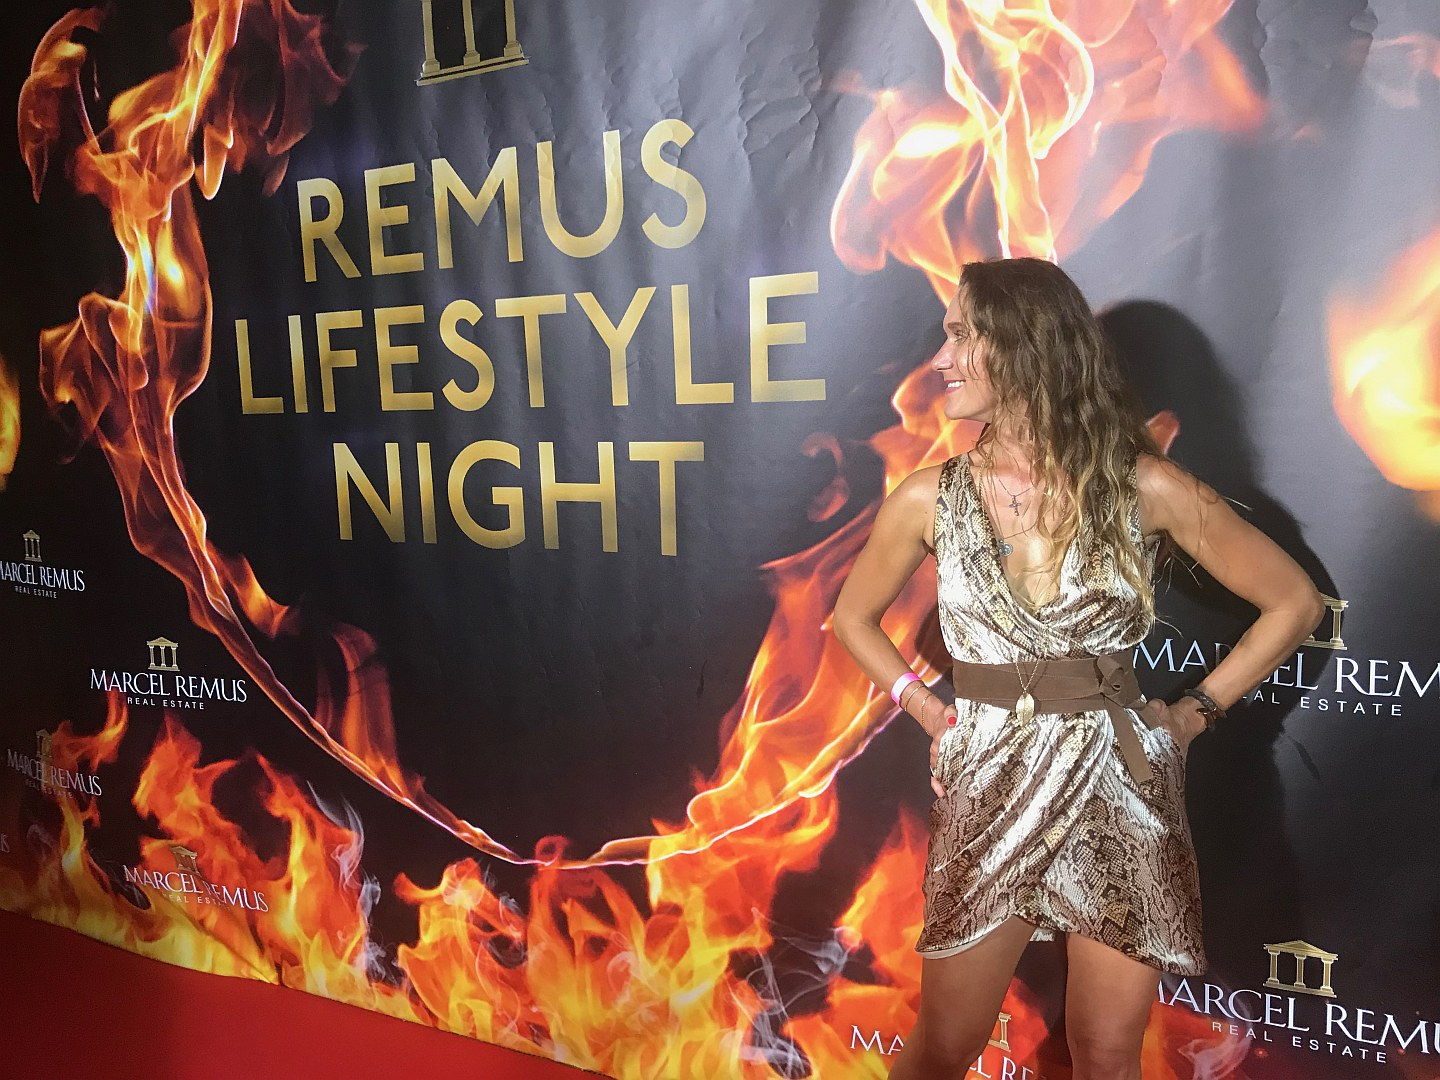 Remus Lifestyle Night 2018